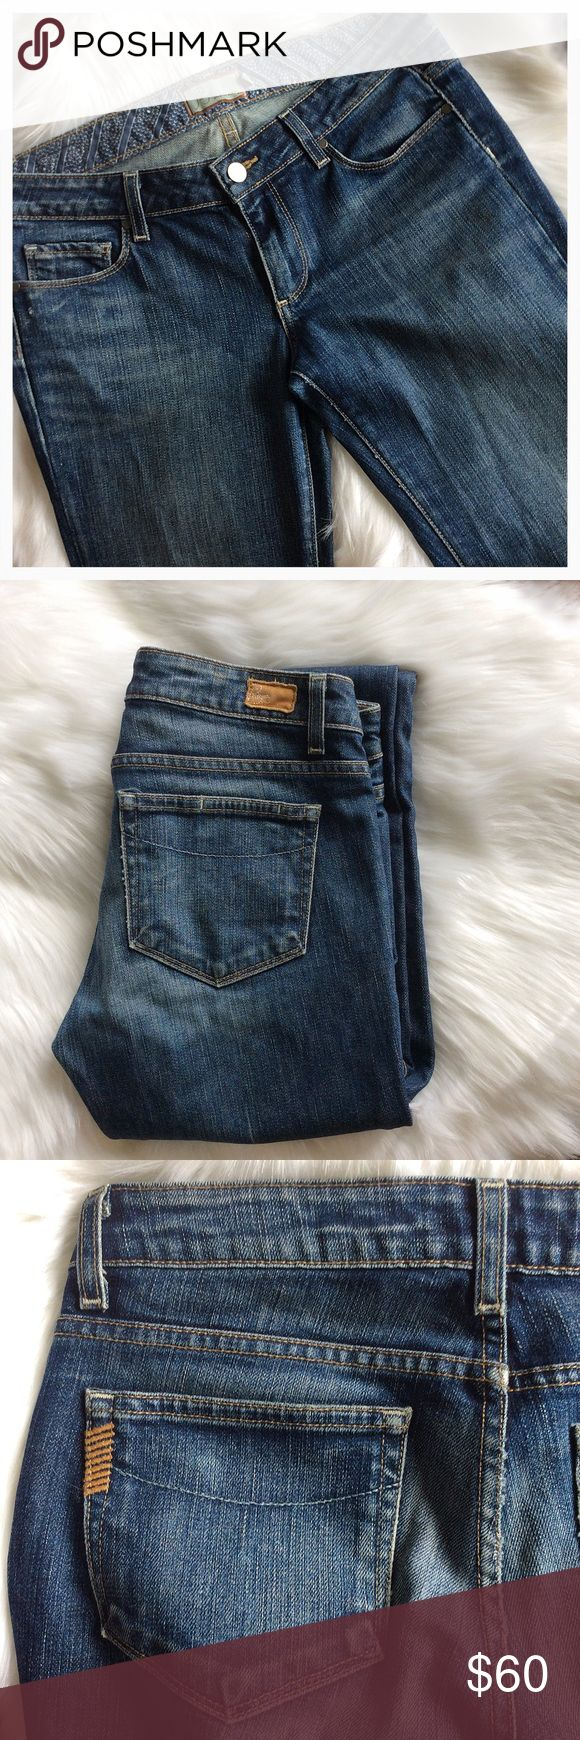 PAIGE Premium Denim Jeans Bootcut ~ Low Rise ~ Only worn 2-3 times at most.  GREAT JEANS👌🏼 Paige Jeans Jeans Boot Cut